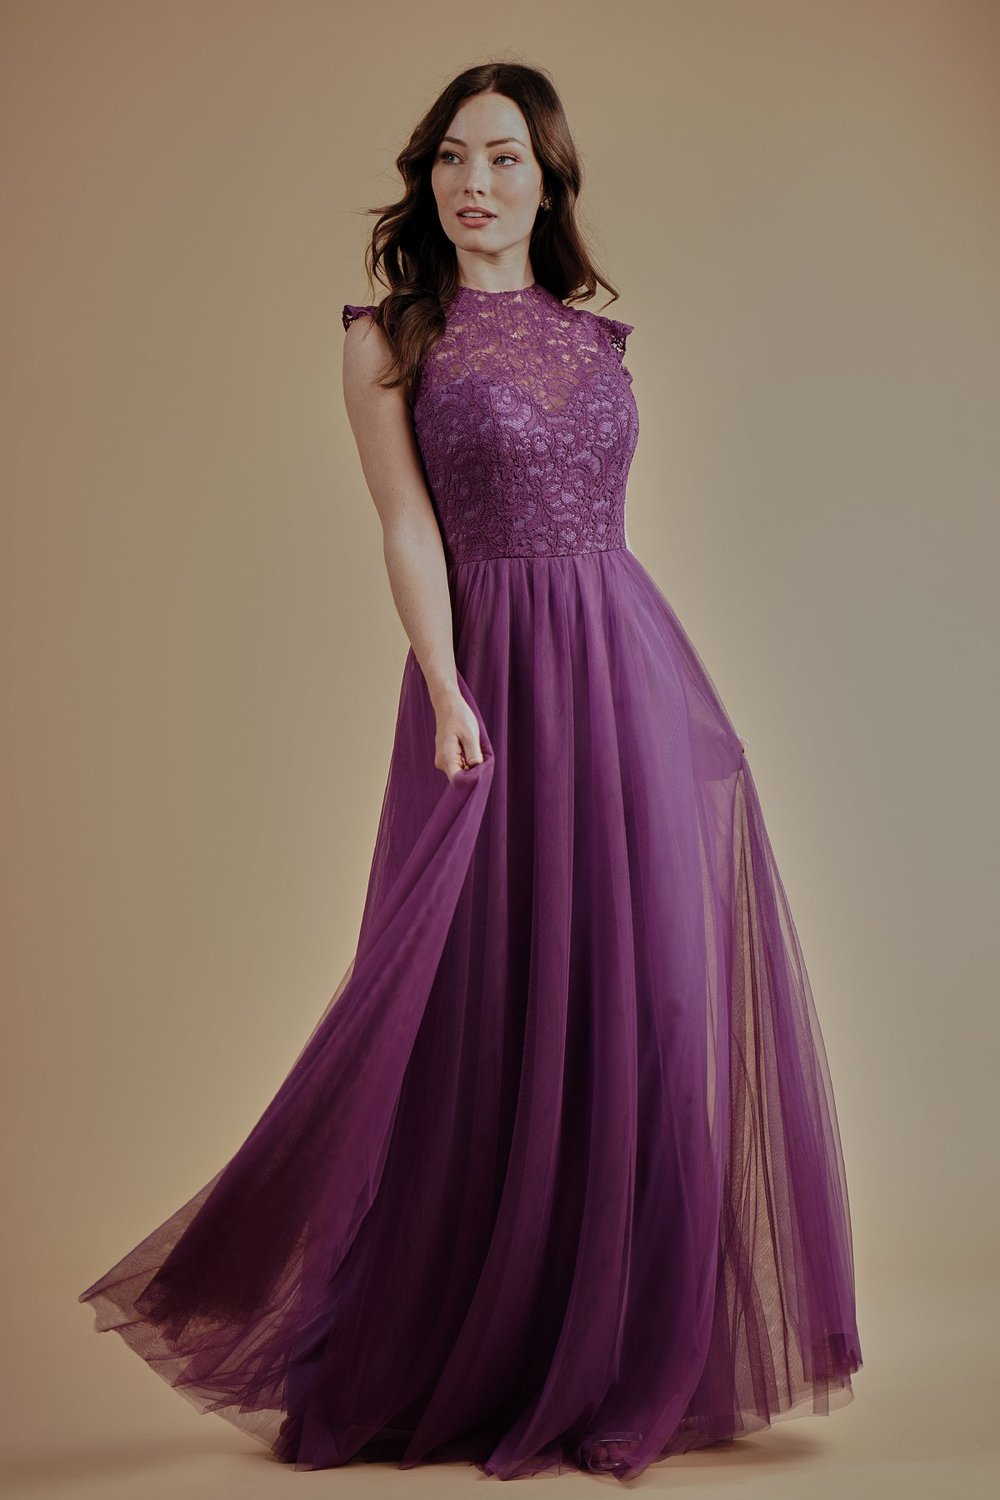 L214007 -  Pretty lace and soft tulle floor length bridesmaid dress with a high neckline, beautiful ruffles on the armholes, and detailed gathers on the flowy skirt.    Available in 17 colors